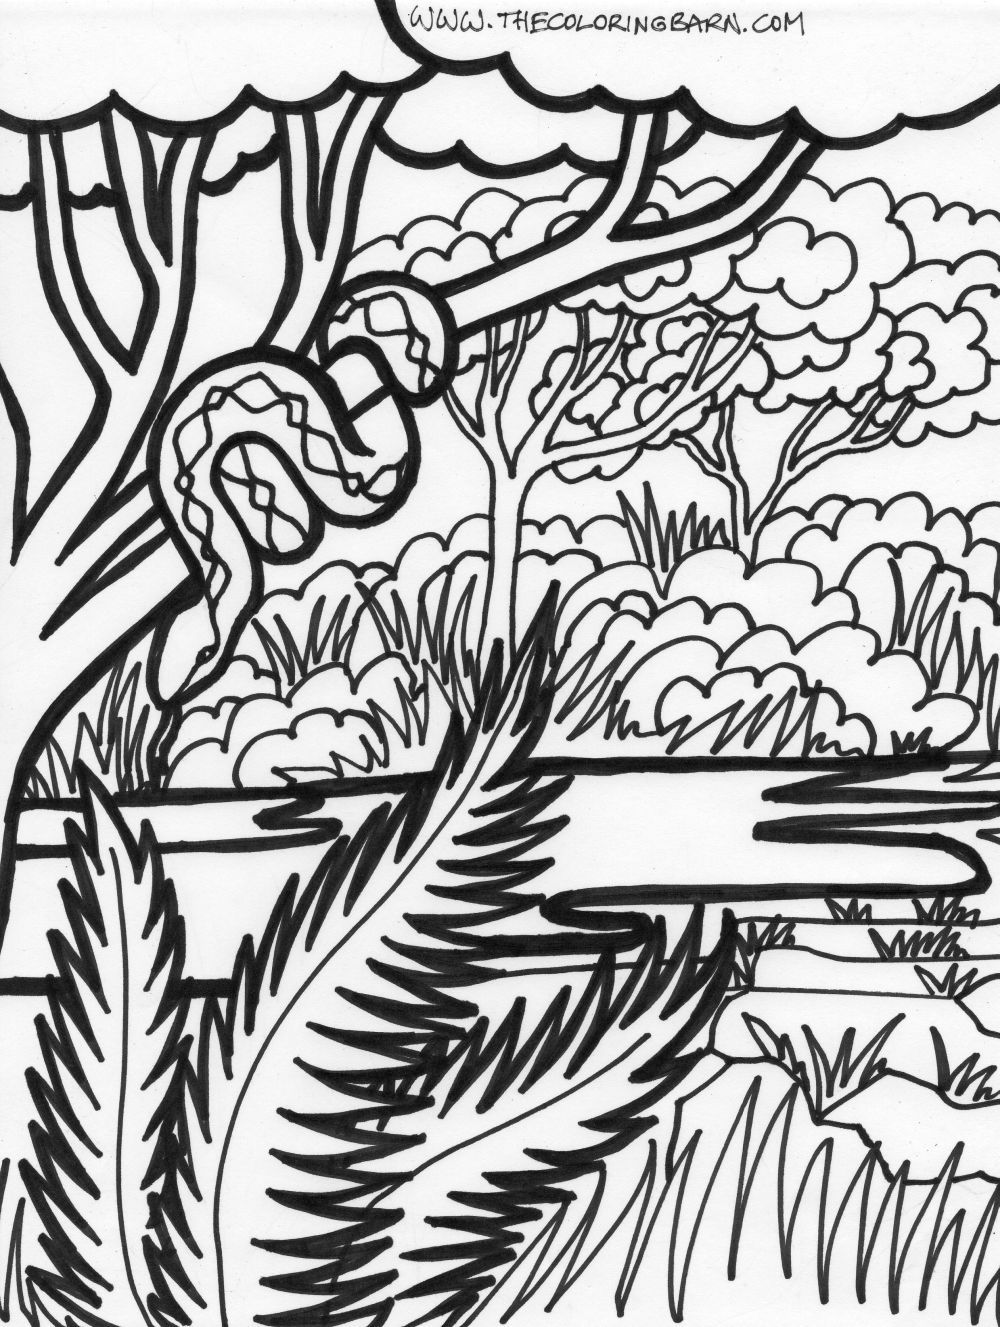 JUNGLE COLORING SHEETS coloring page jungle scene coloring page